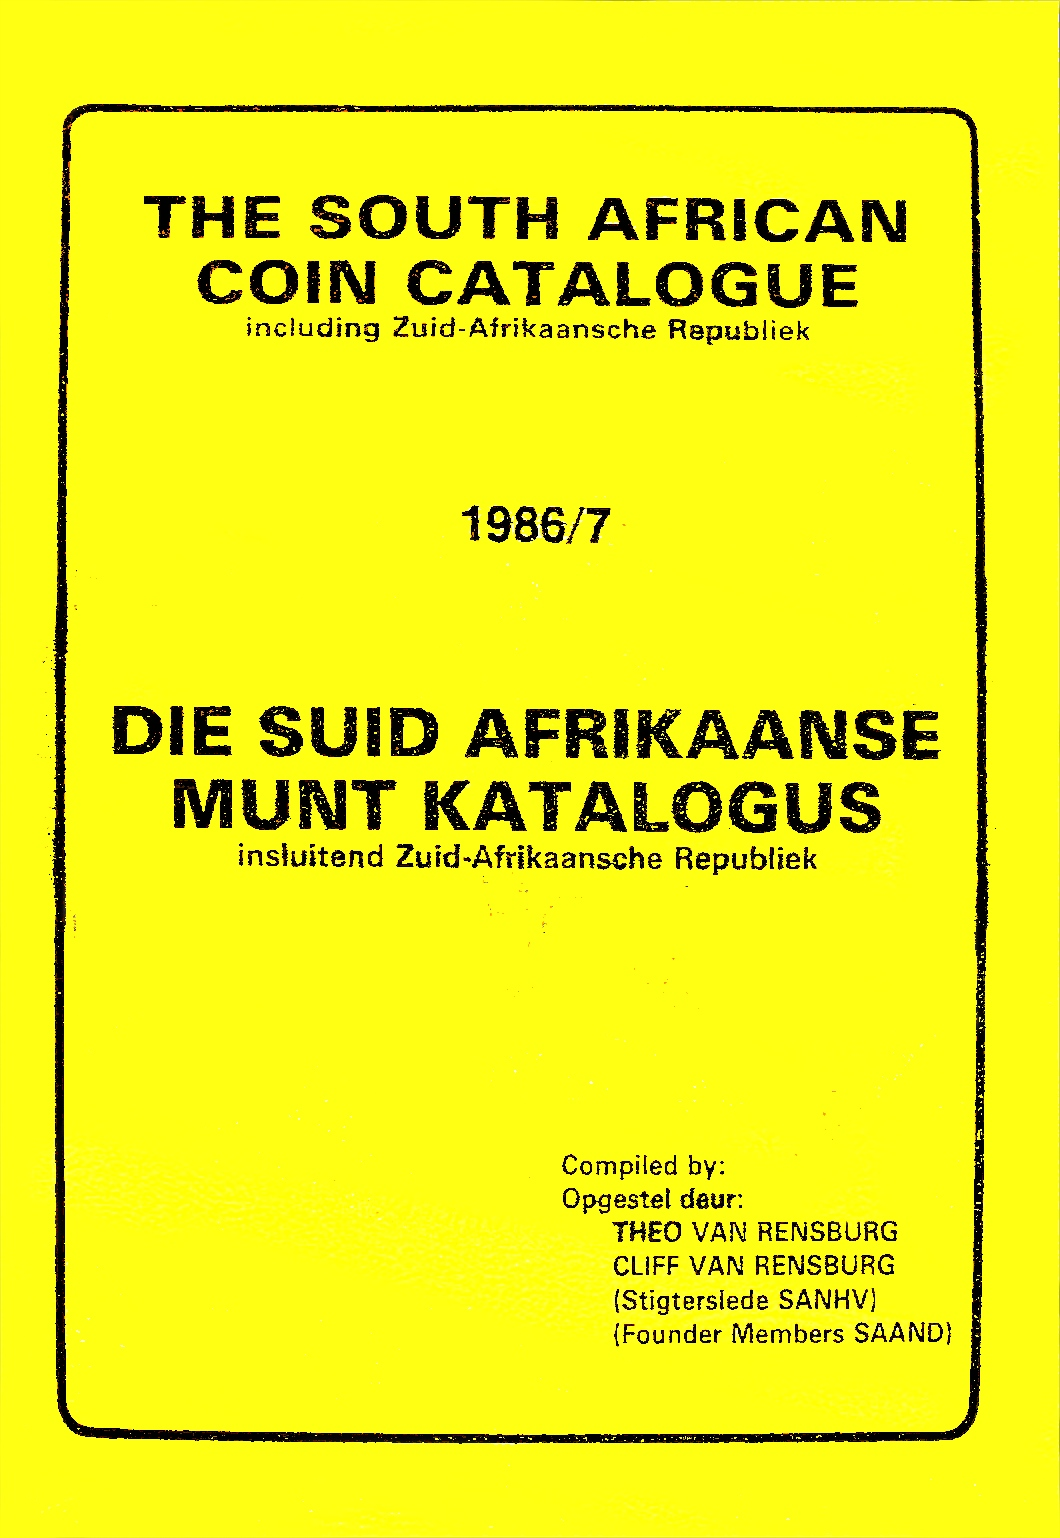 Randburg Coin Catalogue 1986 to 1987